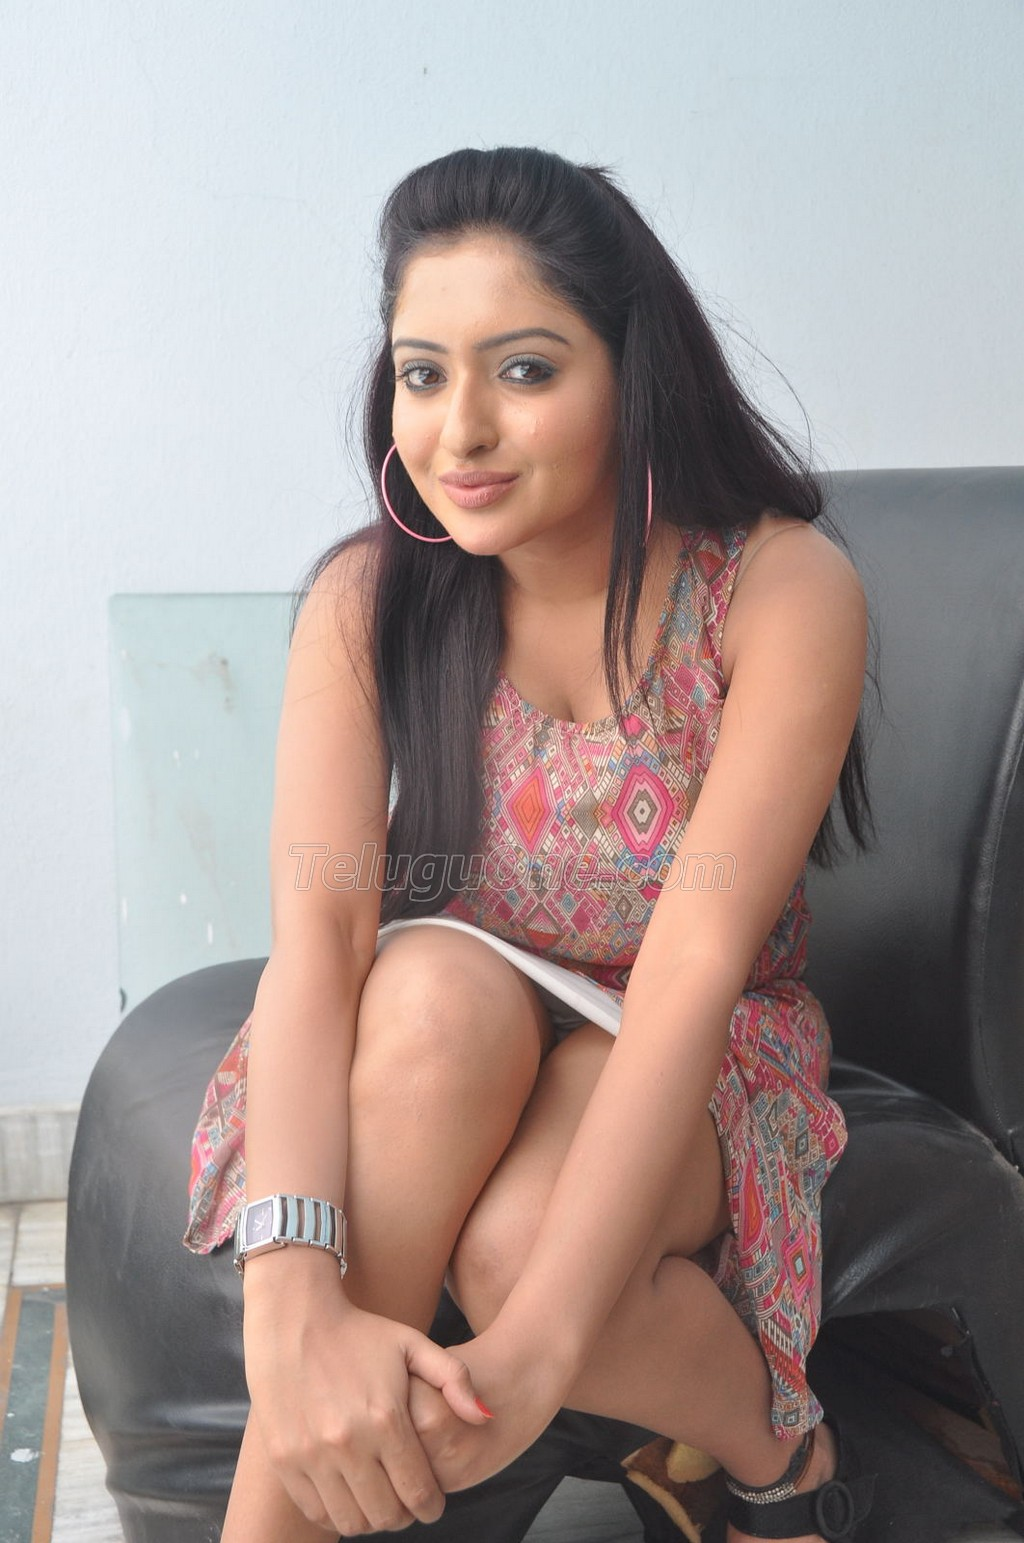 latest hot photo 20 pics of south indian tamil actress